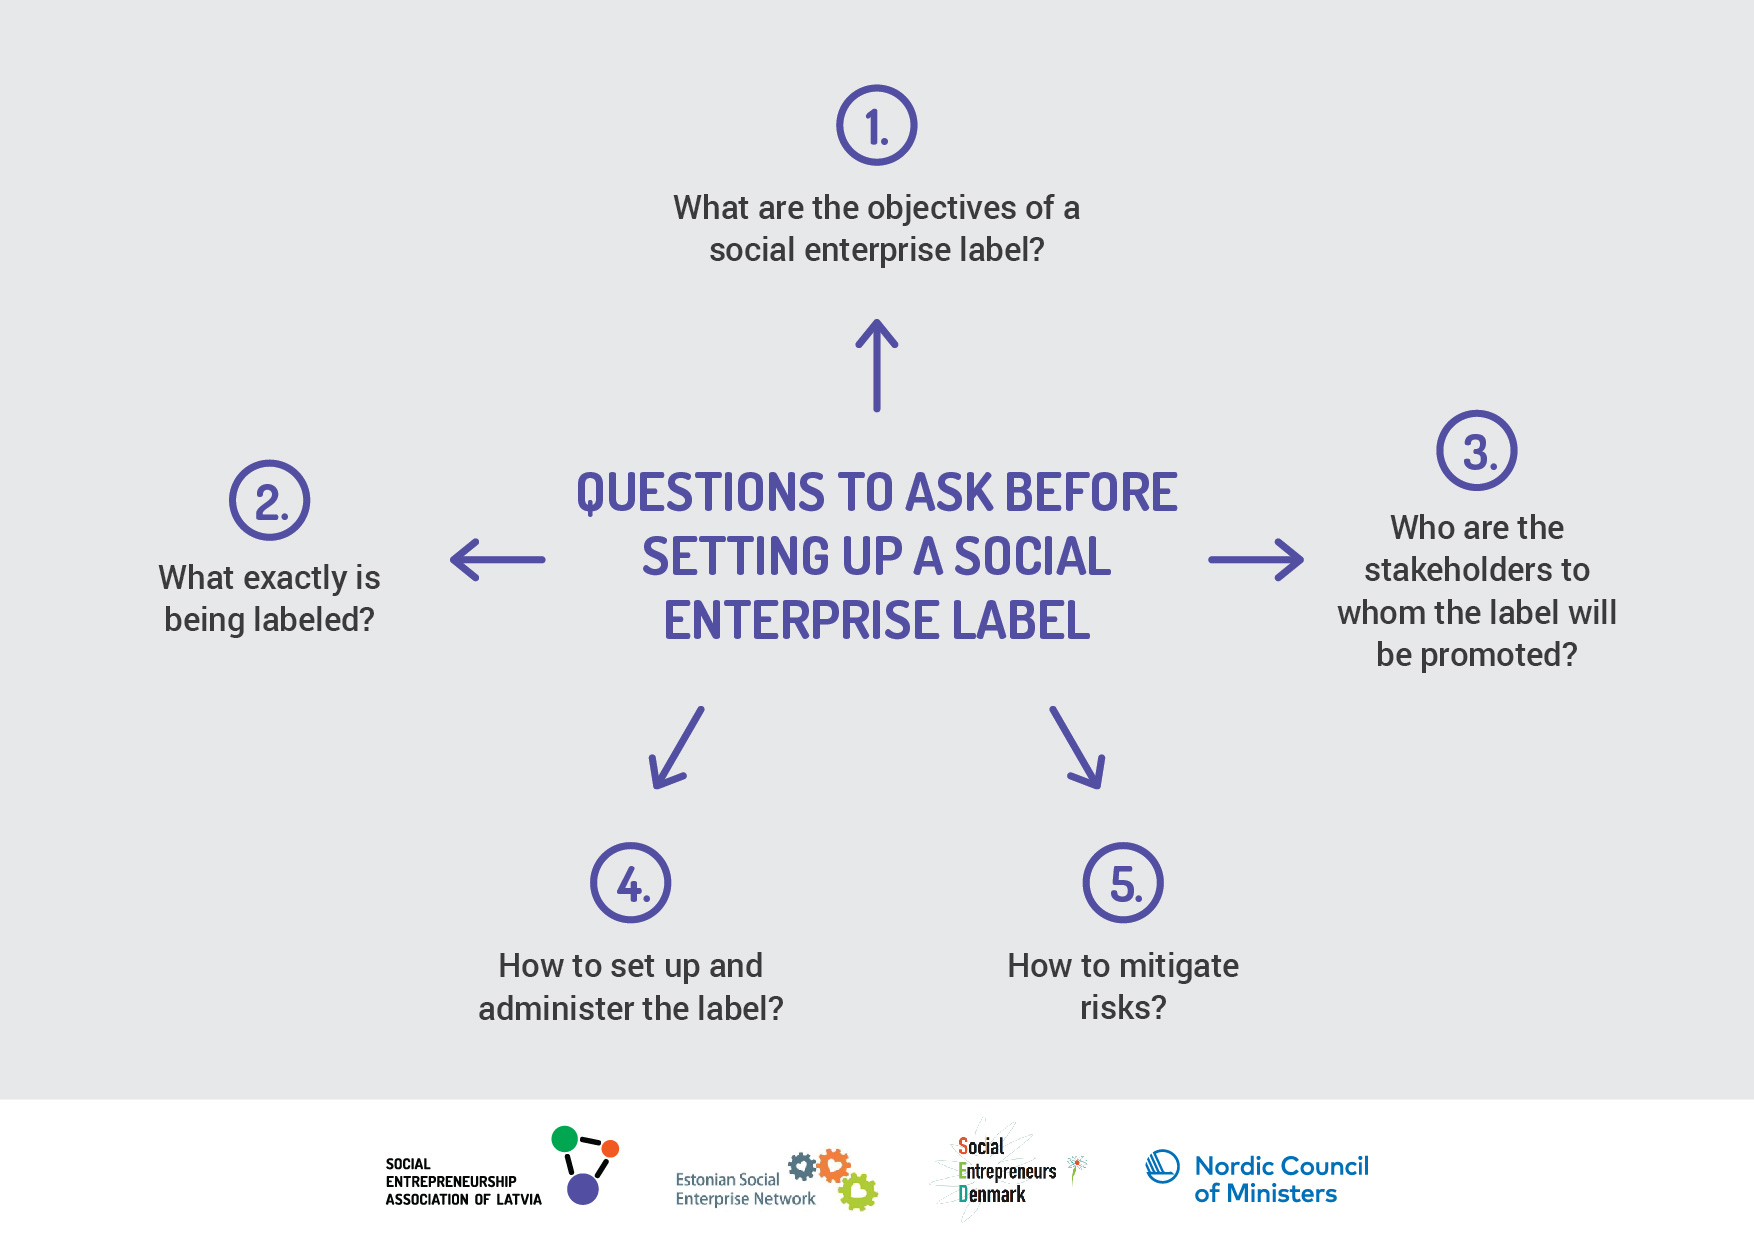 5 QUESTIONS TO ASK BEFORE SETTING UP A SOCIAL ENTERPRISE LABELING - questions to ask entrepreneurs